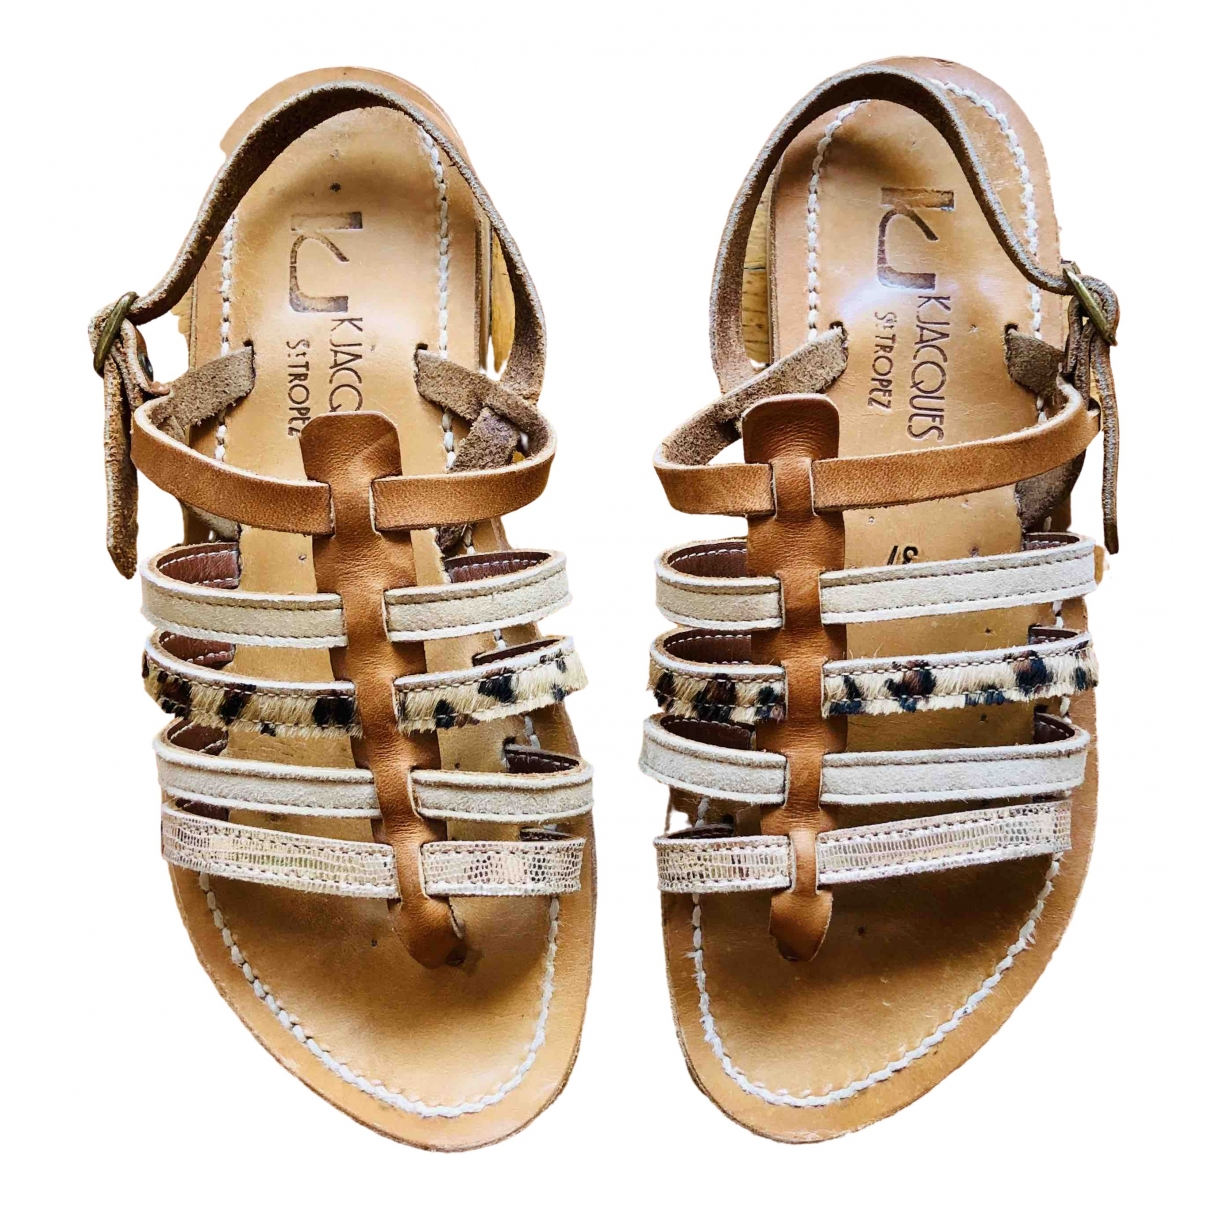 K Jacques Homere Brown Leather Sandals for Women 37 EU